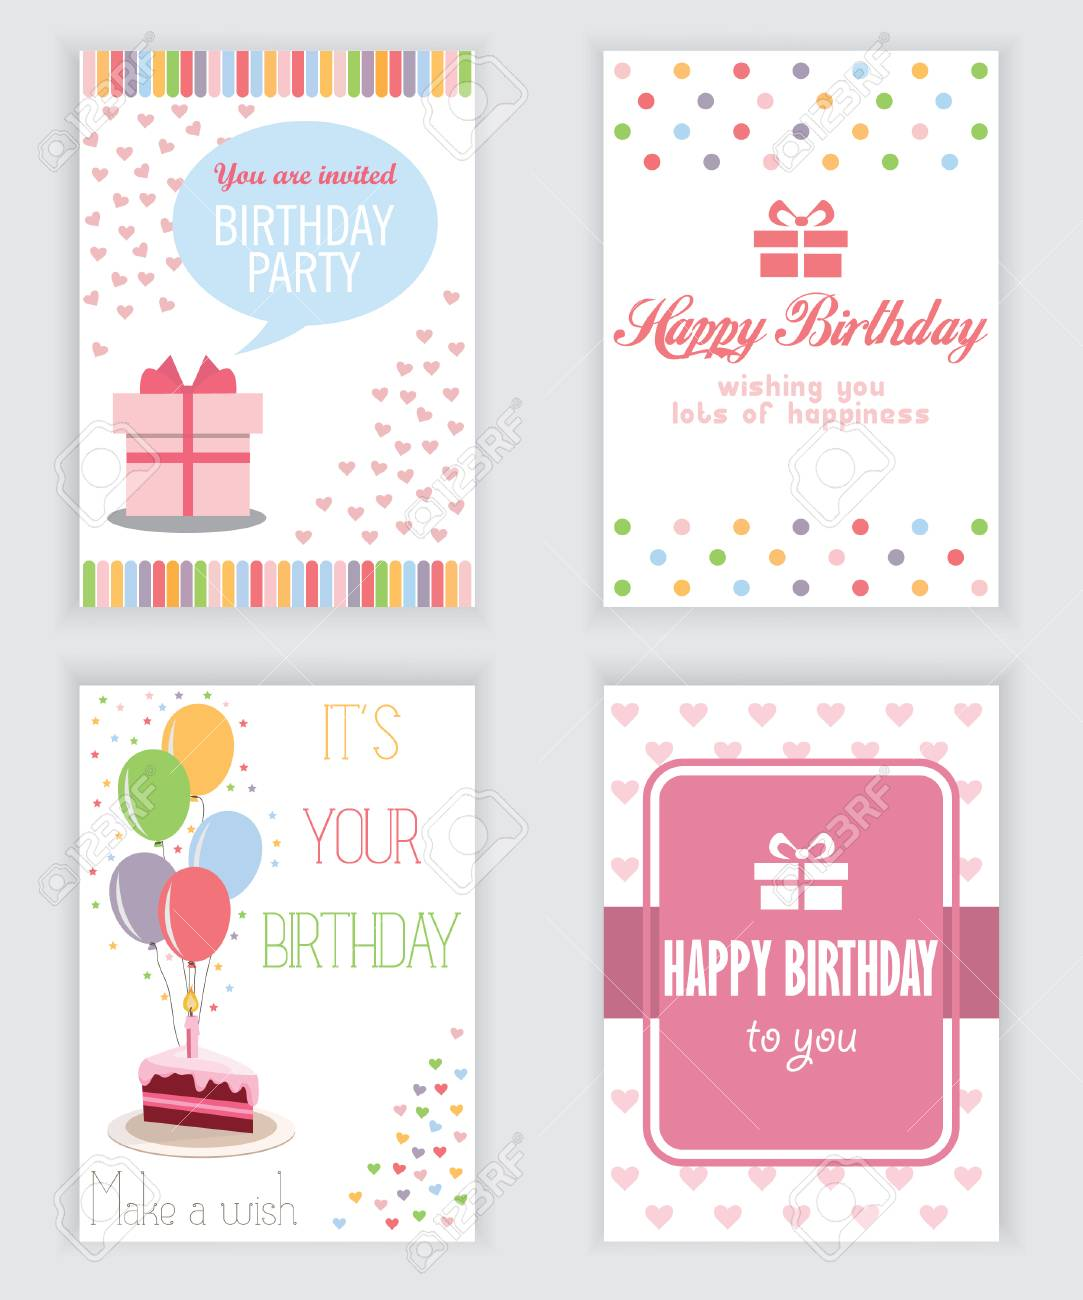 Happy Birthday Holiday Greeting And Invitation Card There